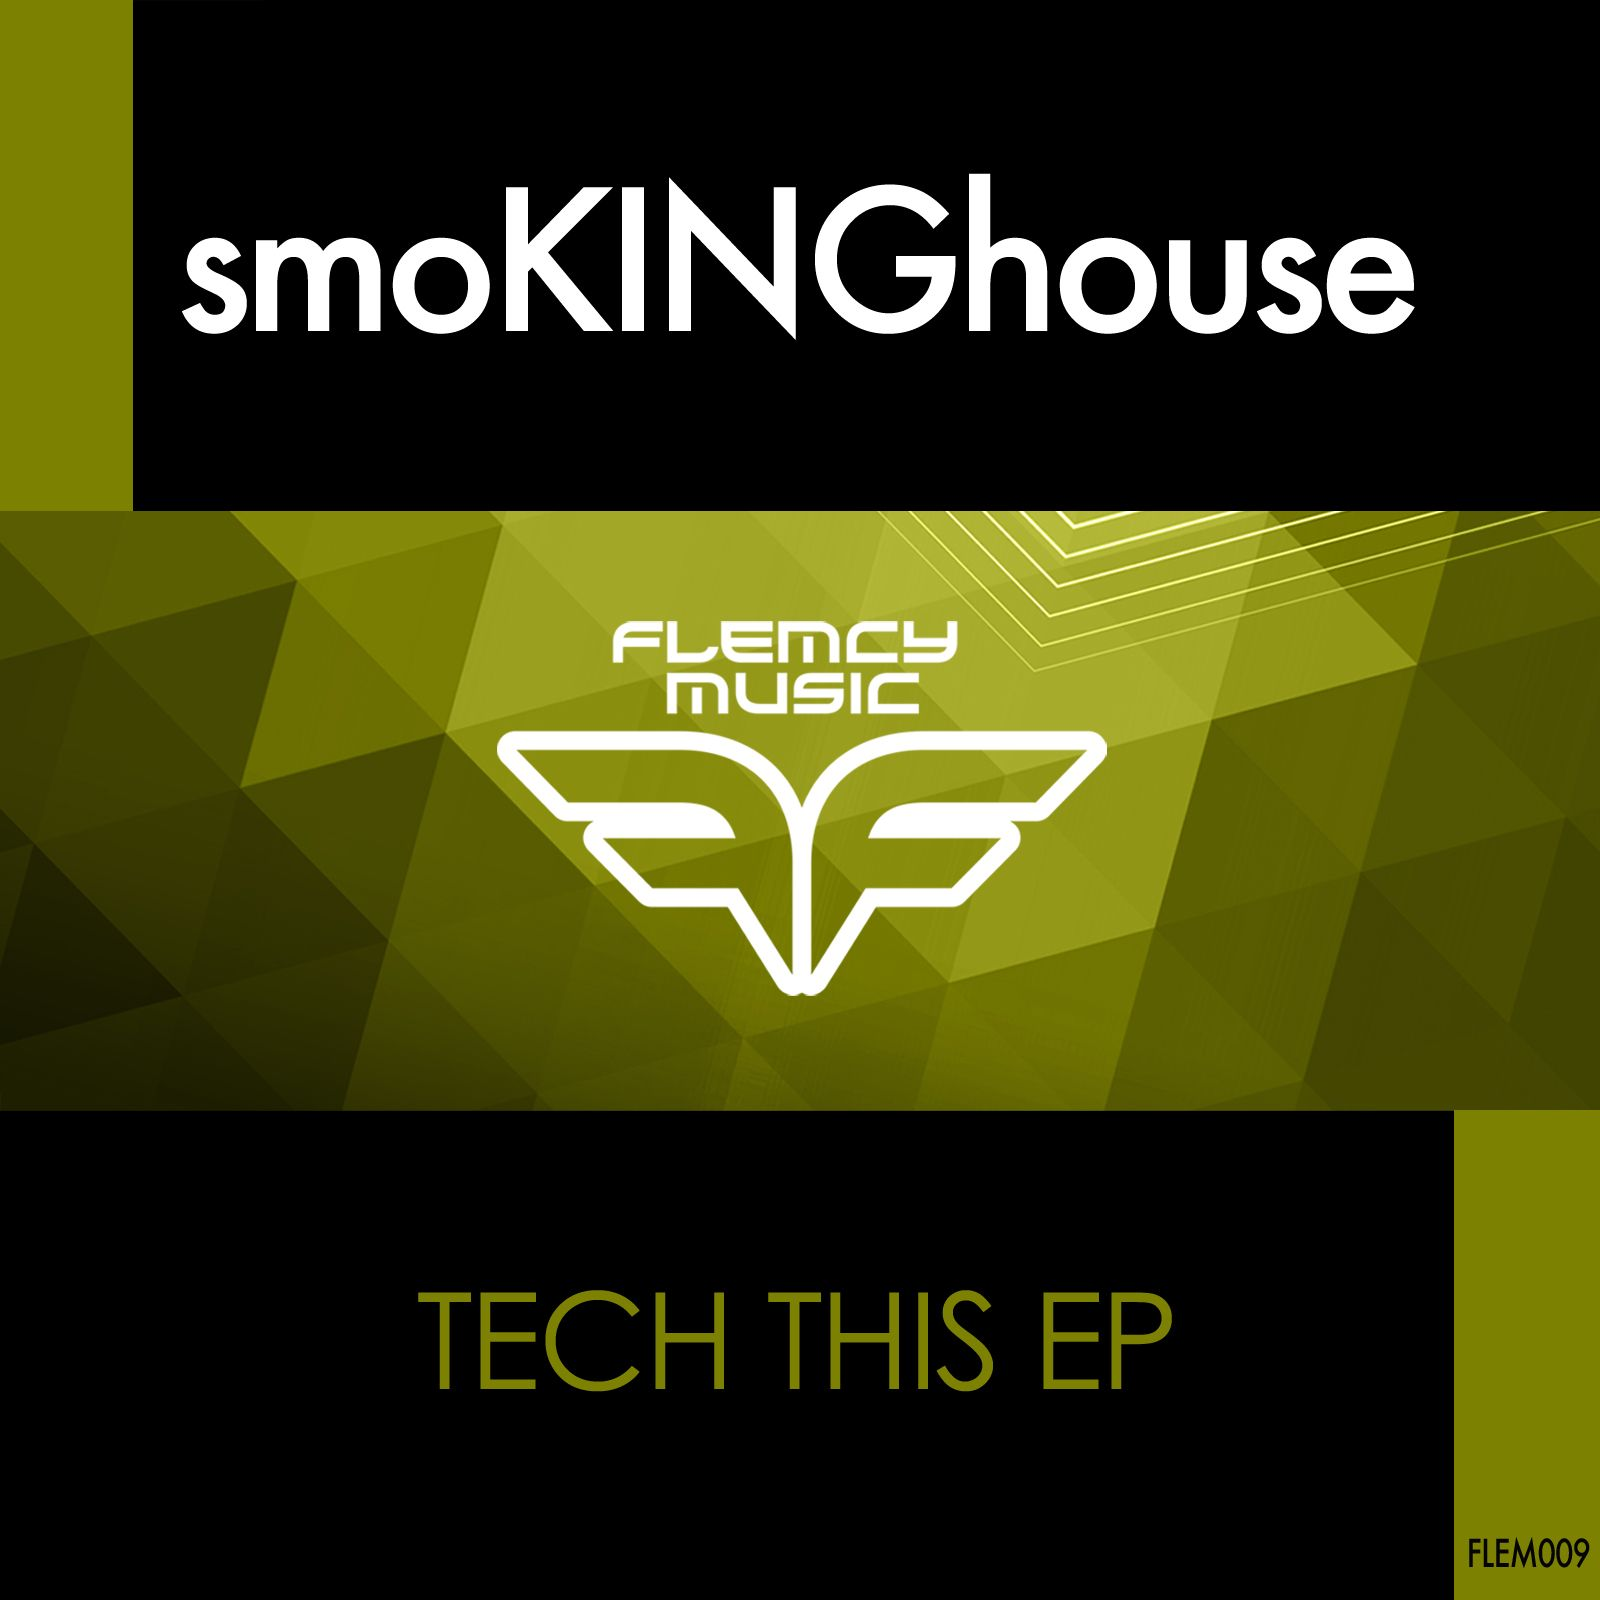 smokinghouse_-_tech_this_ep.jpg